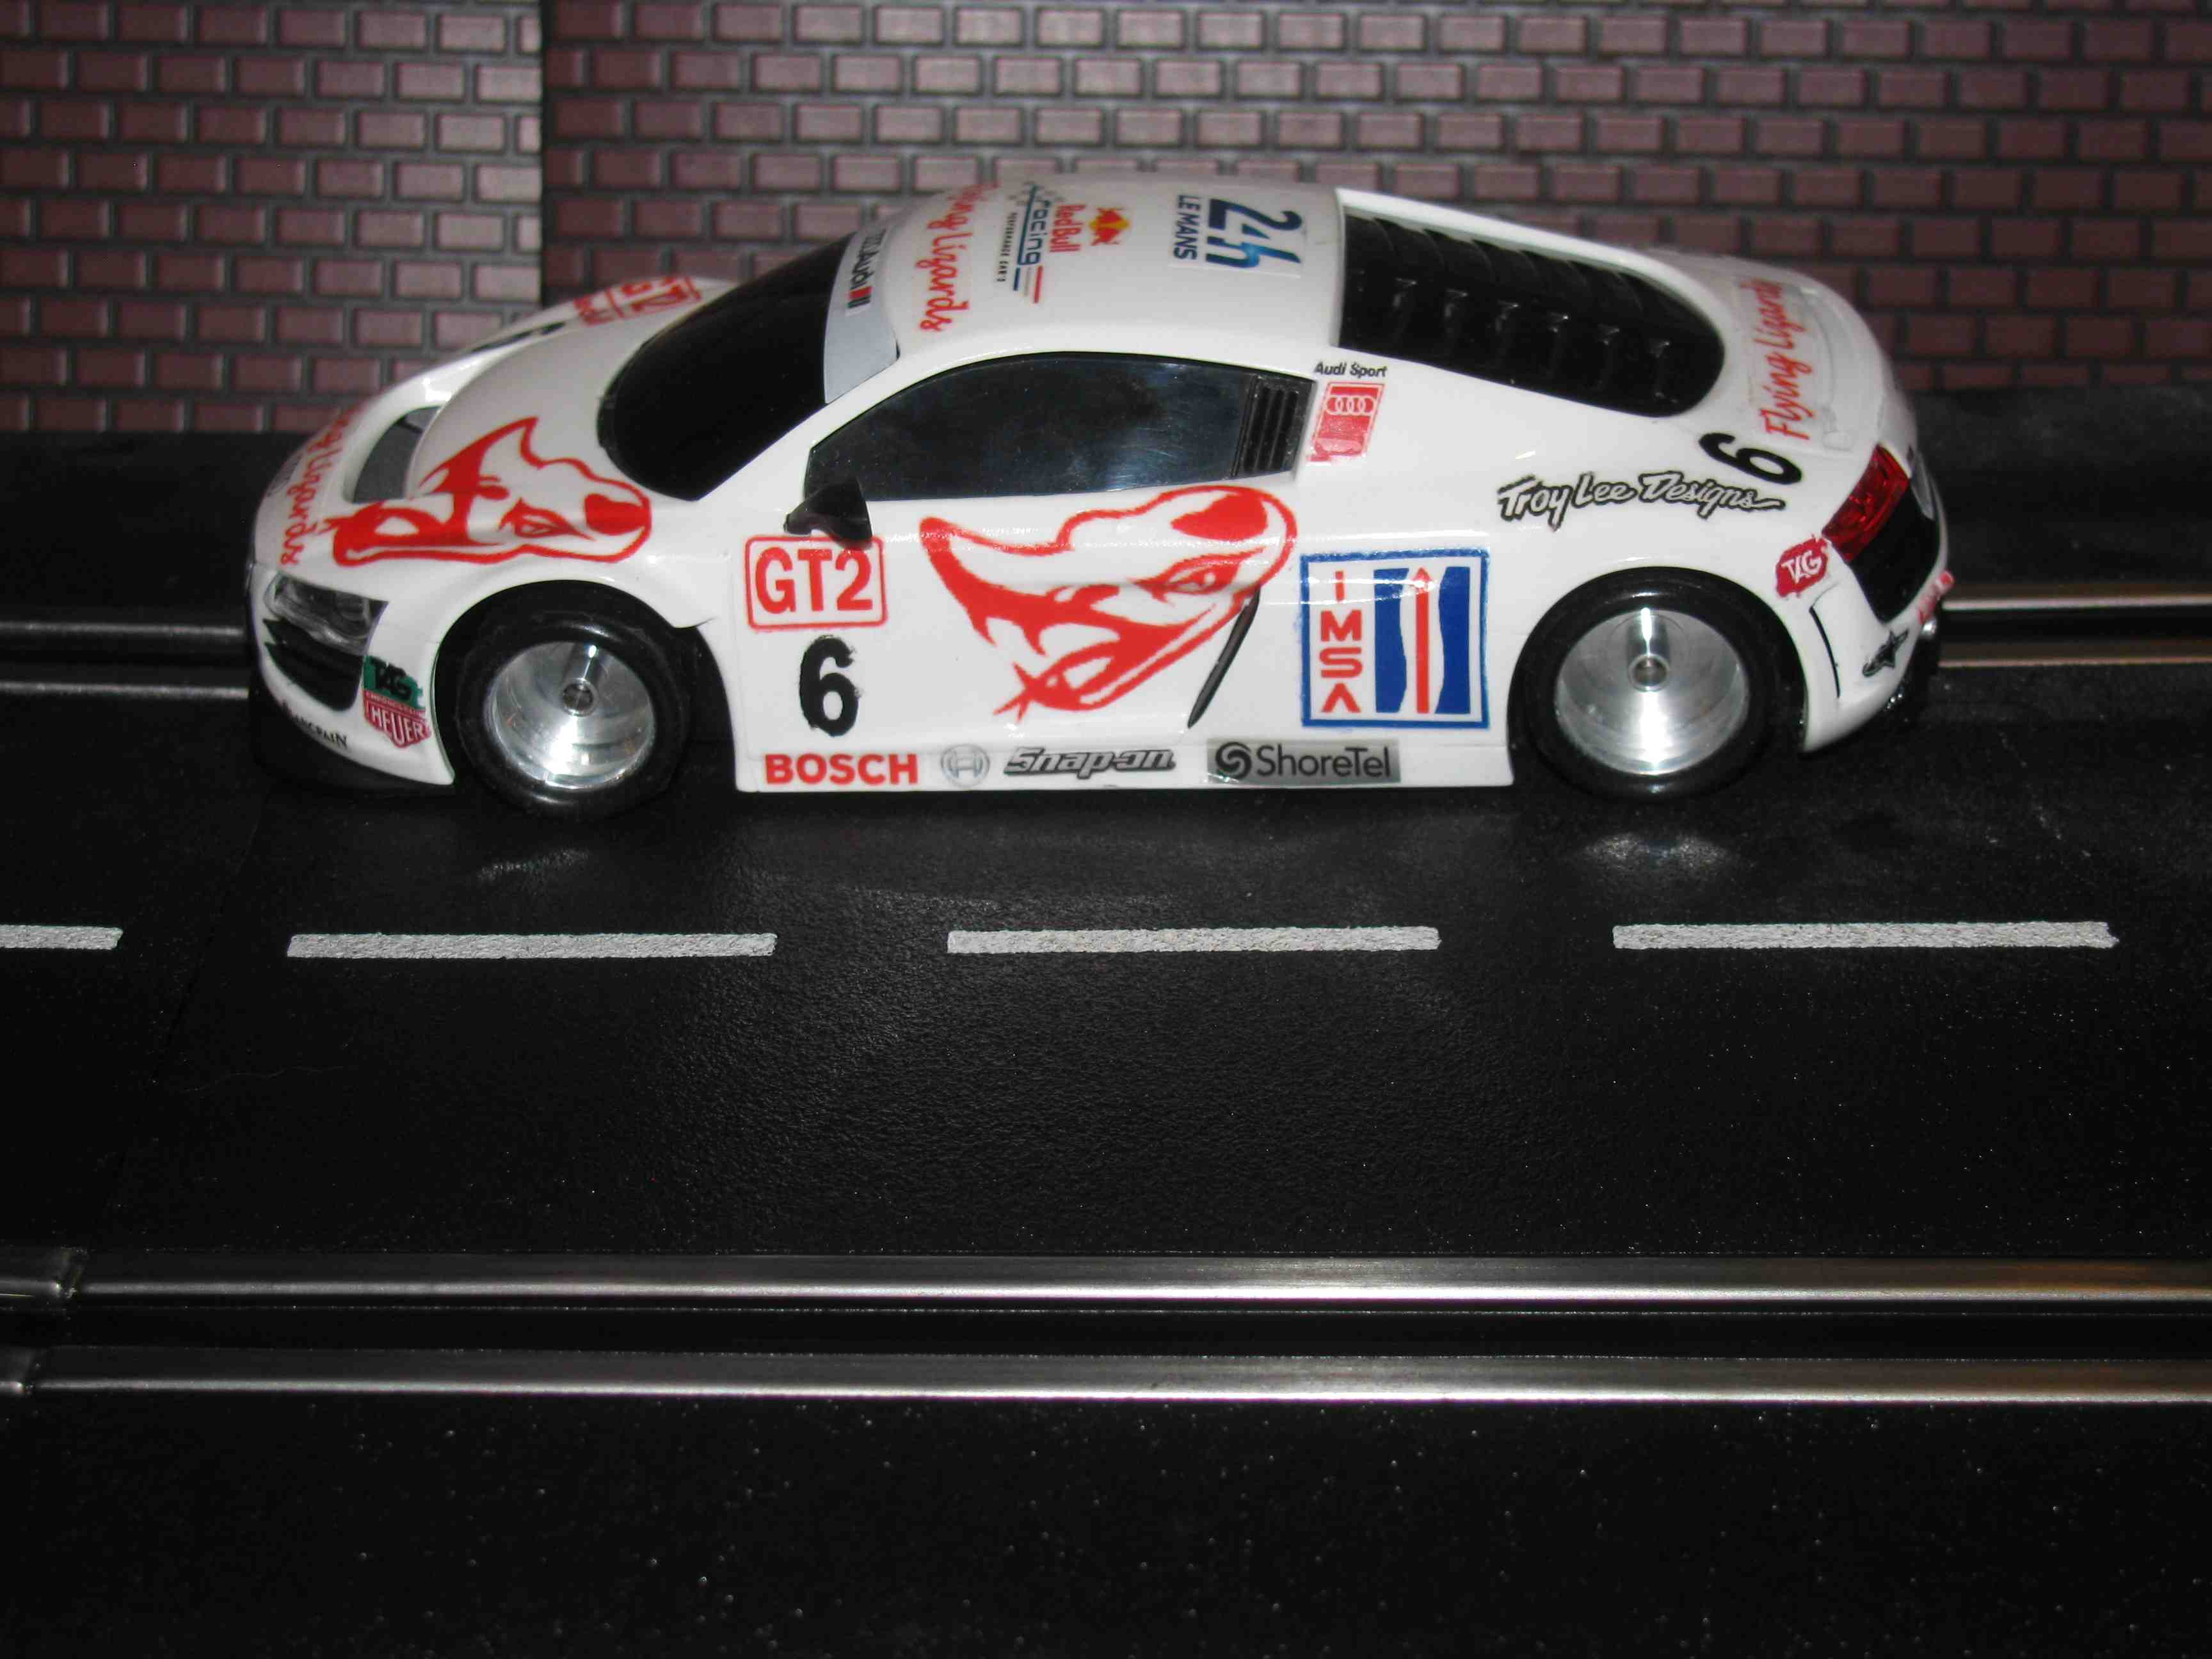 * SOLD * Hornby AUDI R8 GT3 IMSA Racer Slot Car 1/32 Scale – Lots of Customization's